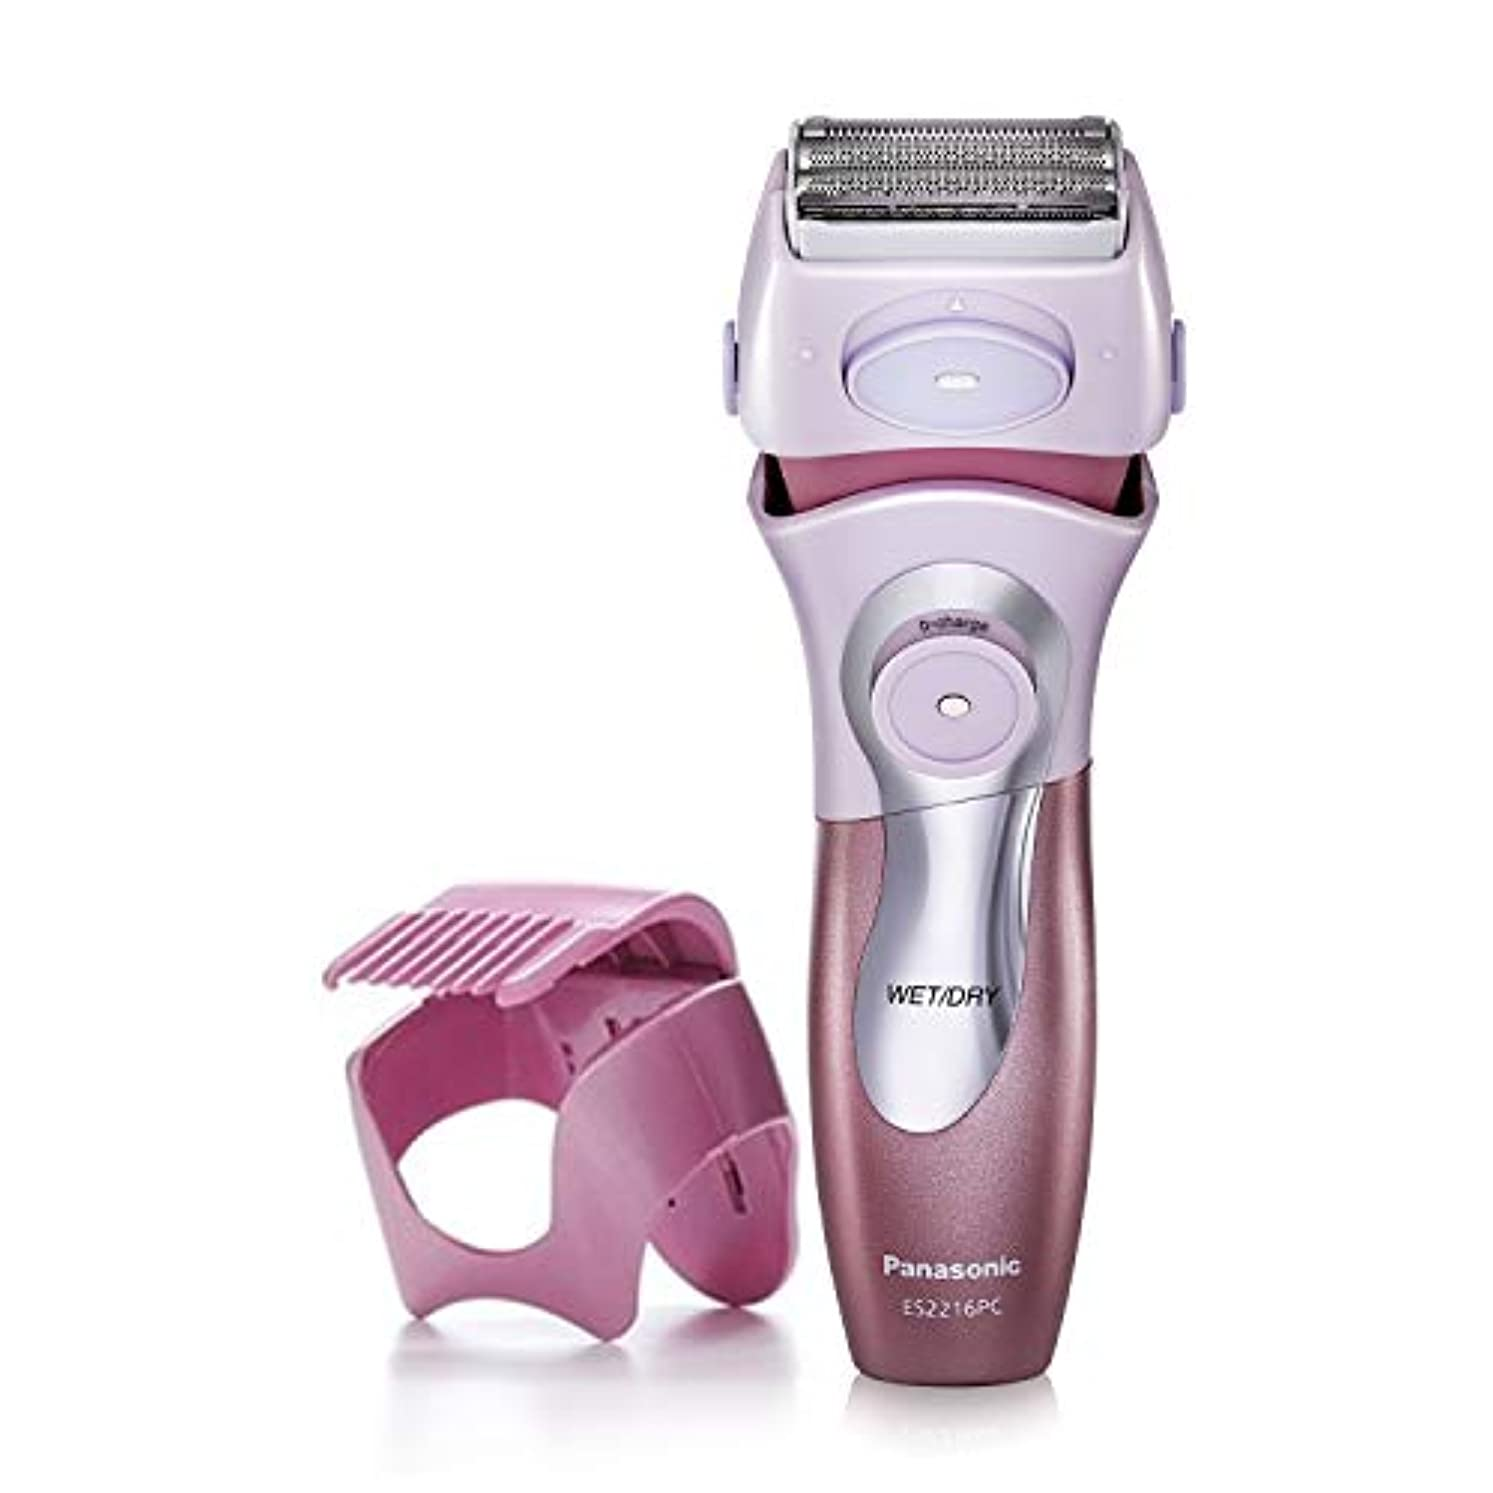 群衆遺体安置所ネットPanasonic ES2216PC Close Curves Women's Electric Shaver, 4-Blade Cordless Electric Razor with Bikini Attachment...